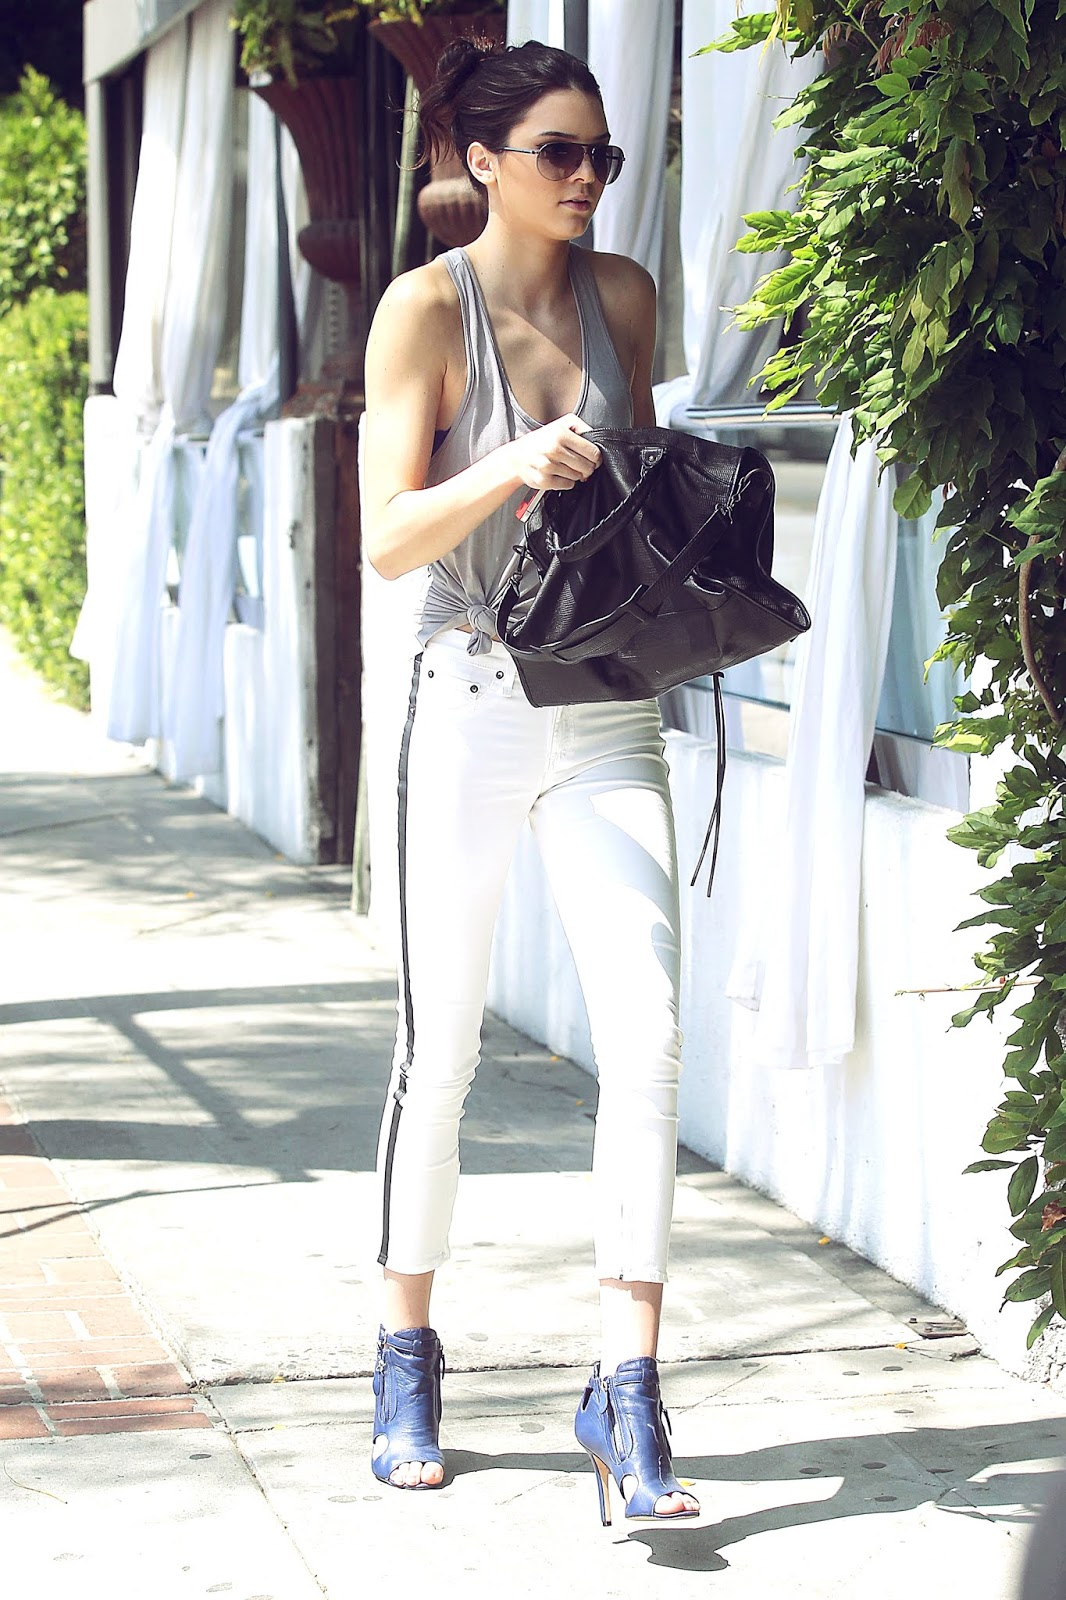 01 - Shopping in West Hollywood California on June 14, 2012